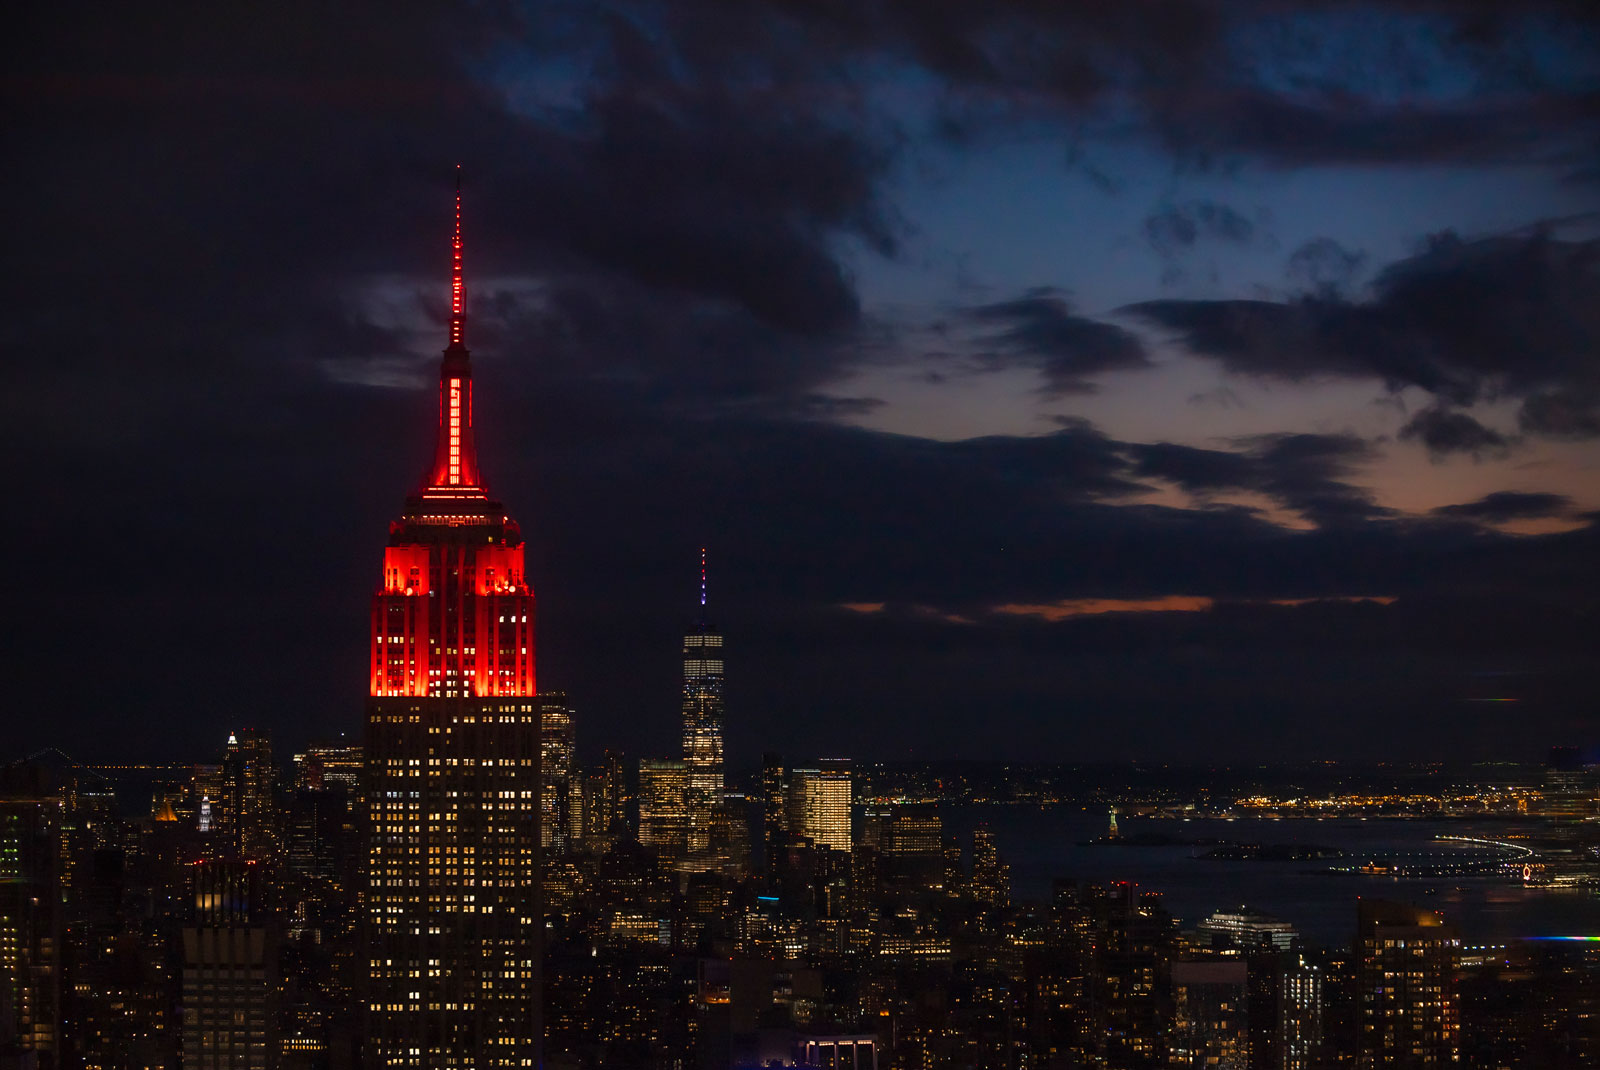 Empire State Building in New York began lighting its tower red on Tuesday, Feb. 16, starting at sunset.